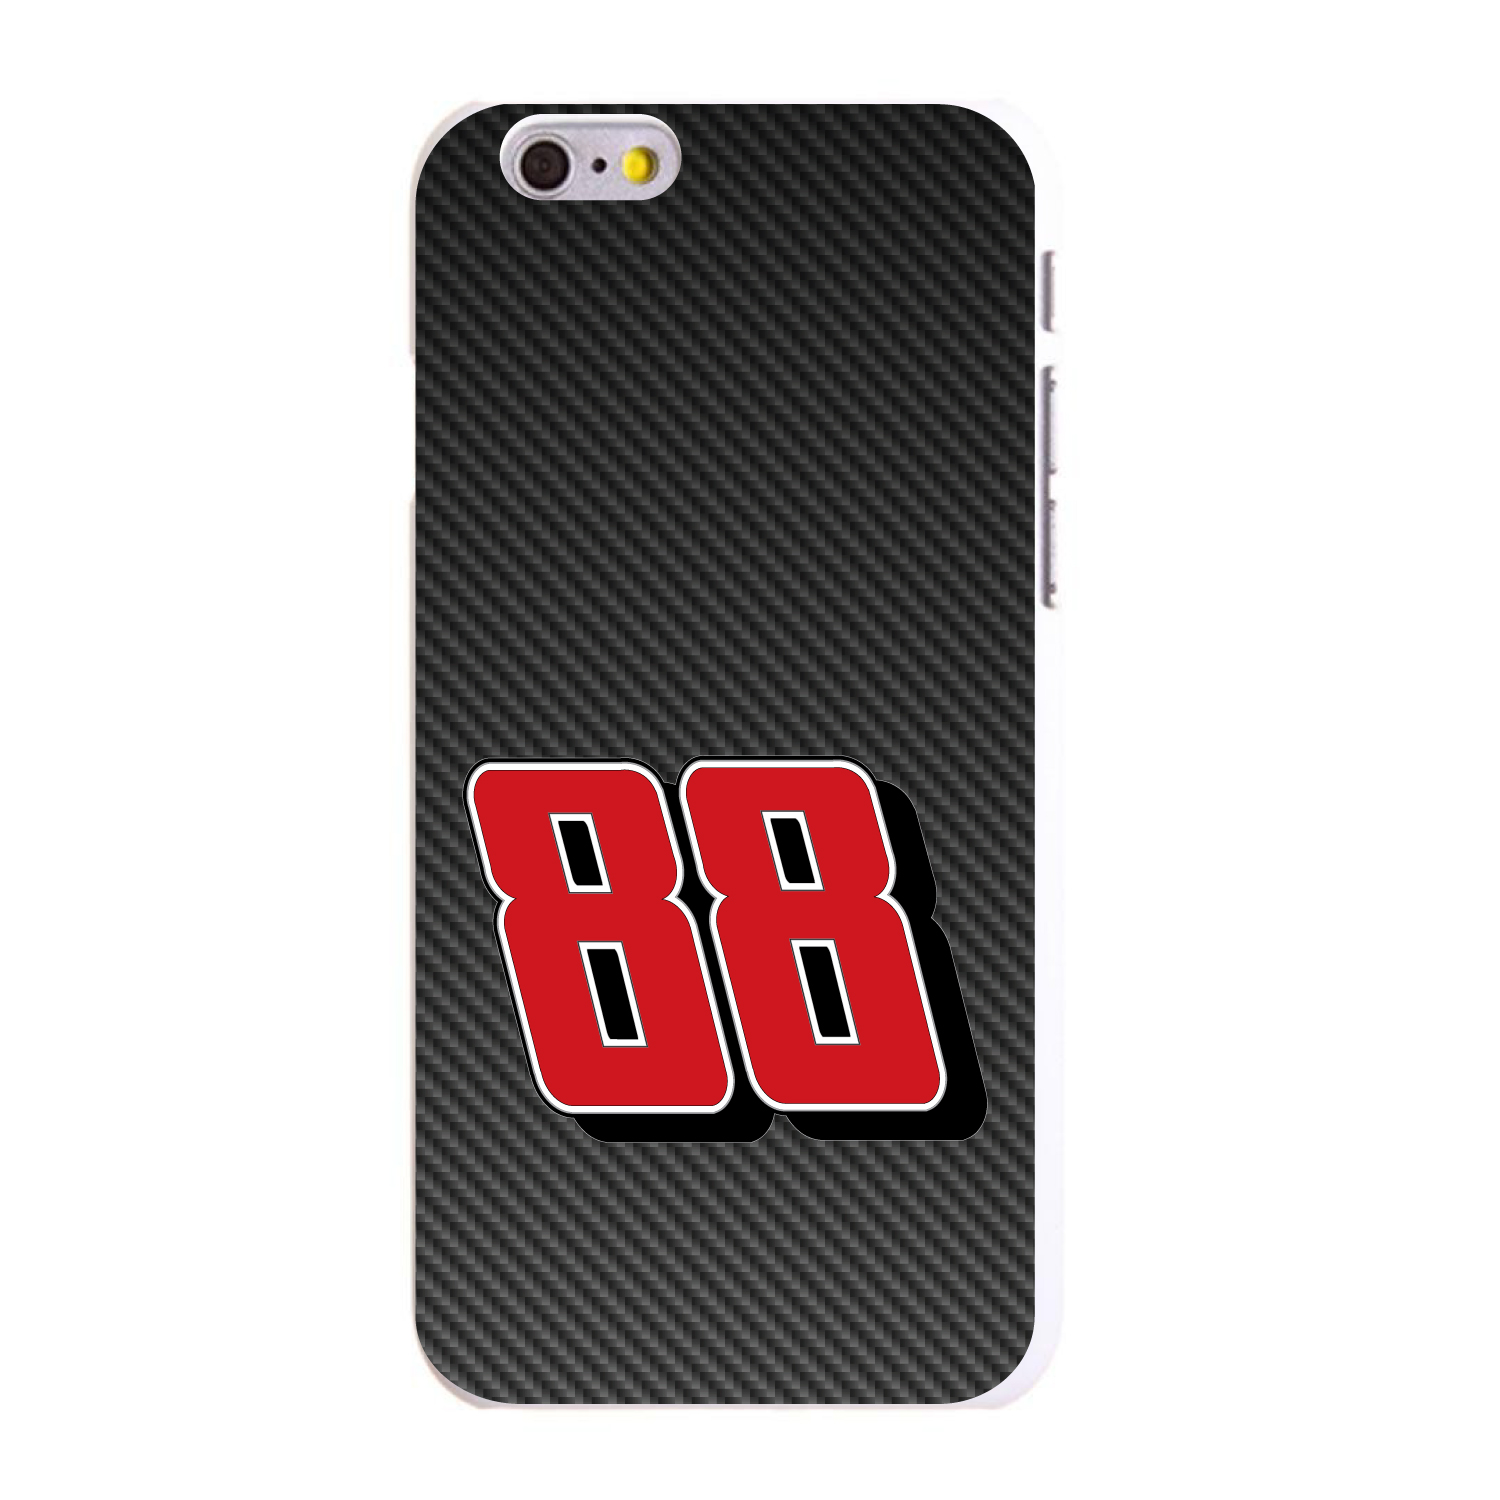 """CUSTOM White Hard Plastic Snap-On Case for Apple iPhone 6 PLUS / 6S PLUS (5.5"""" Screen) - Race Car Number 88"""